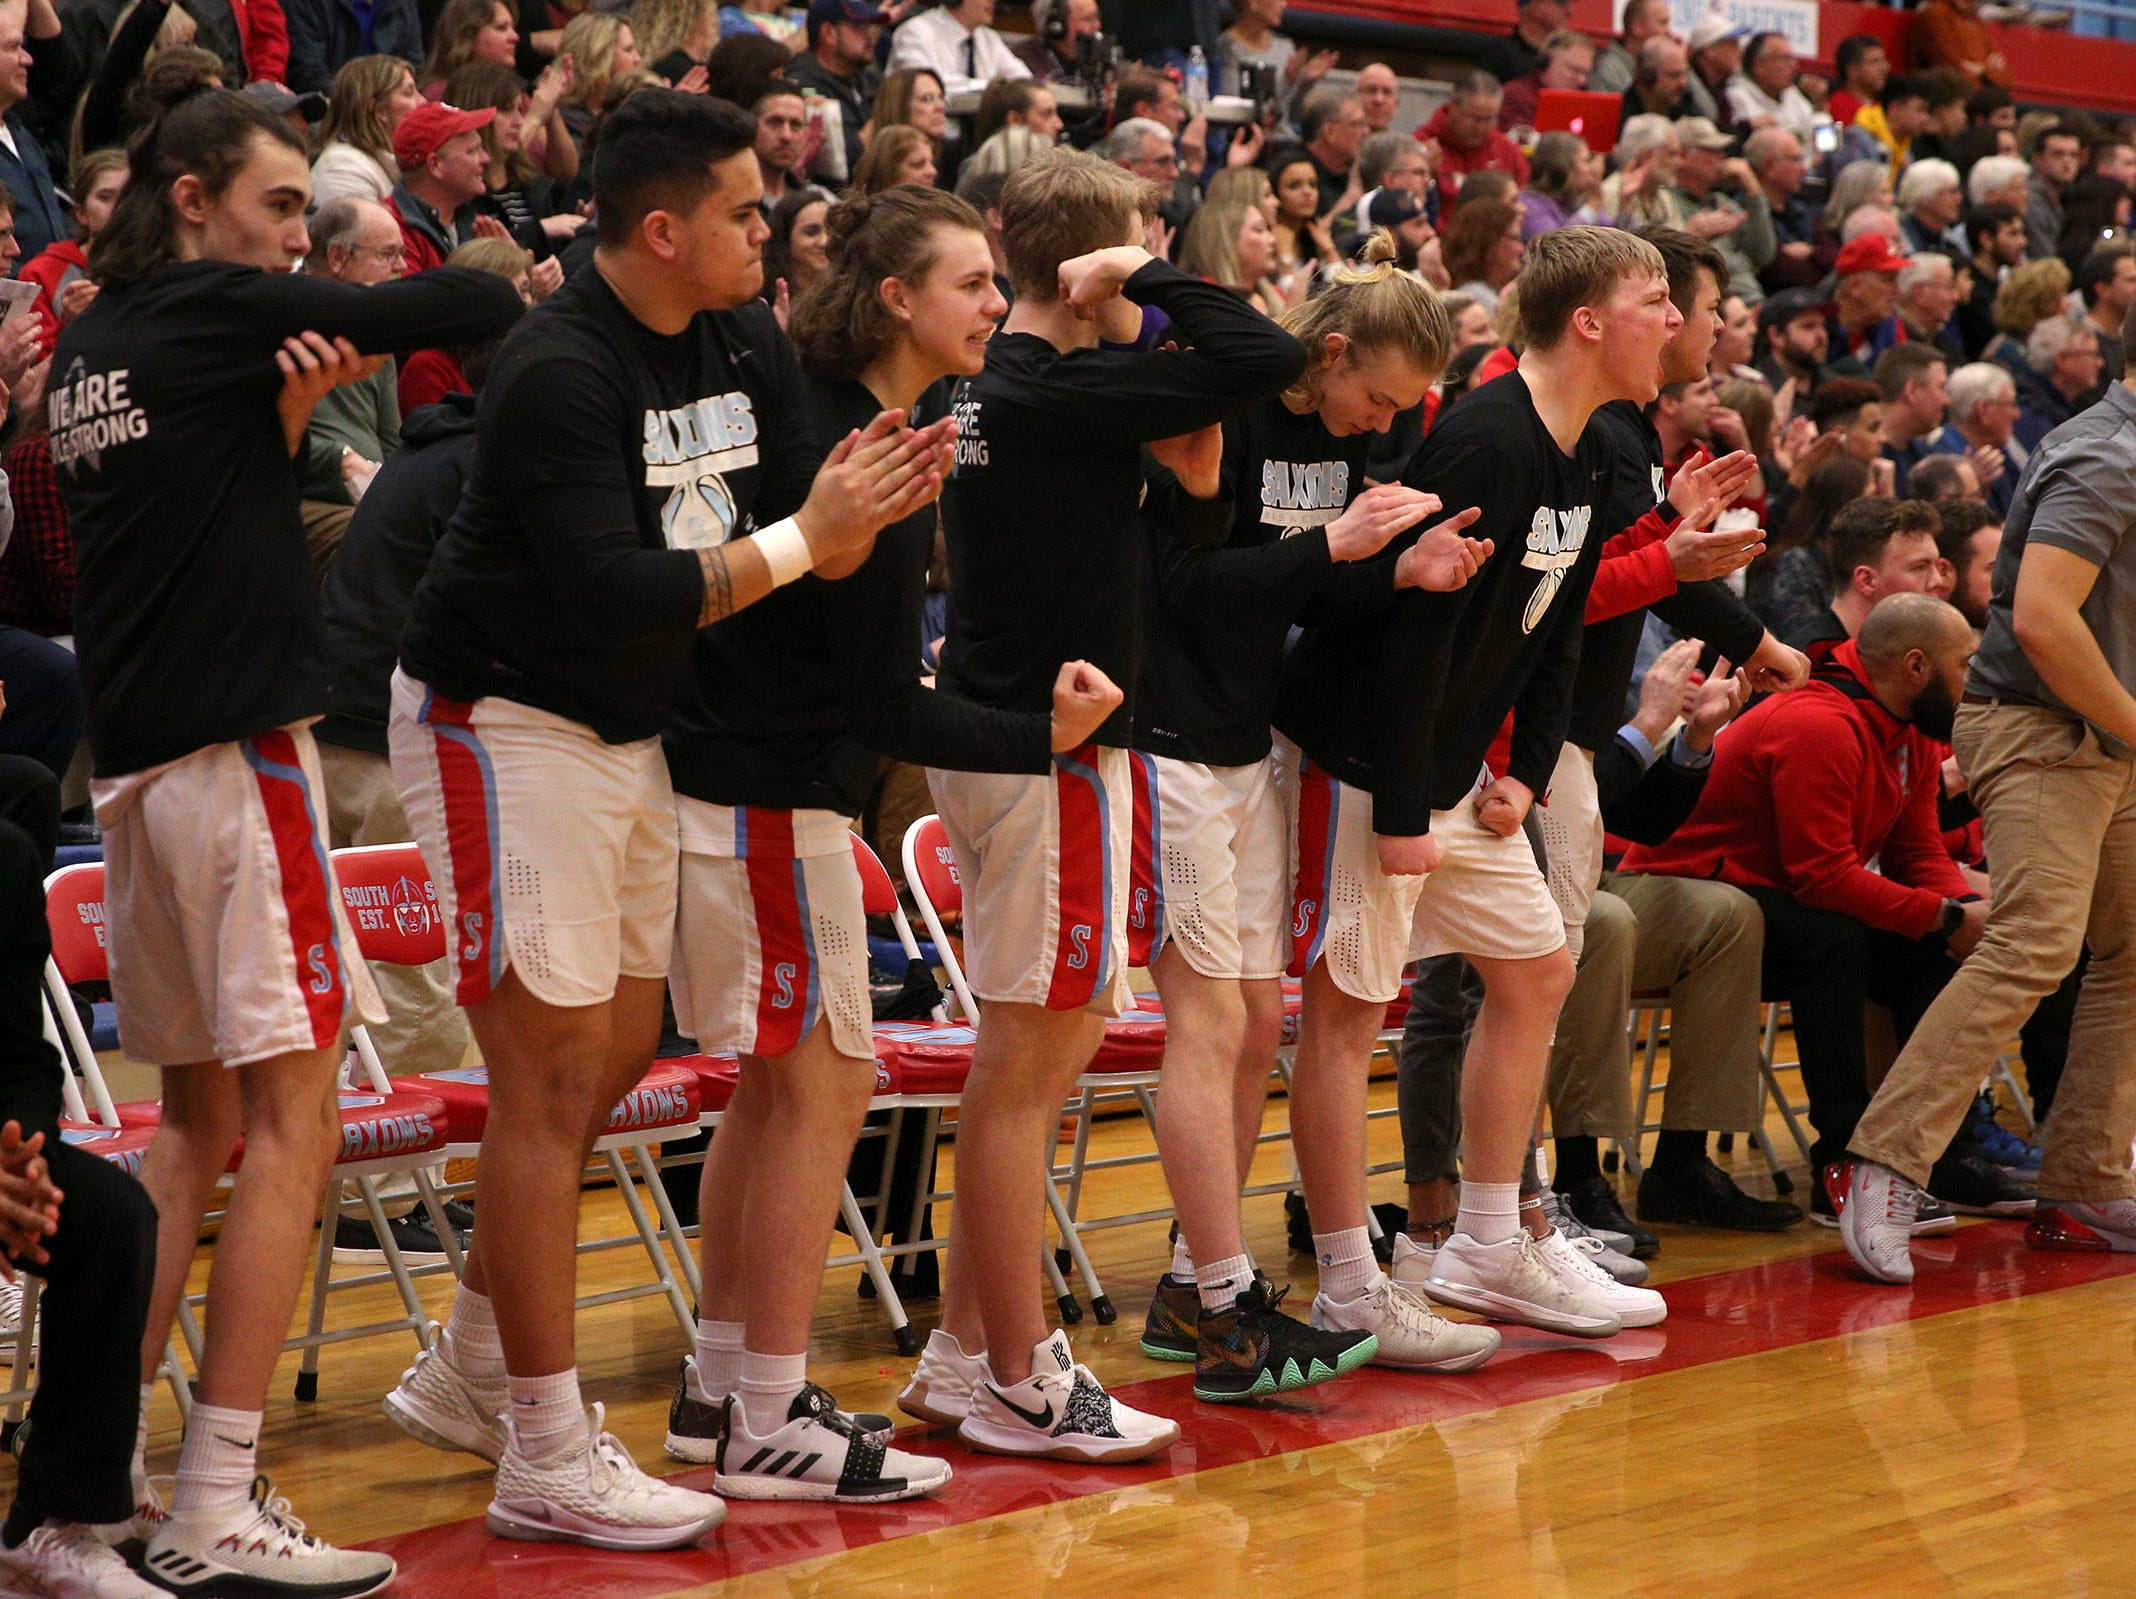 South Salem teammates cheer on their team from the bench during the South Salem vs. West Linn boys basketball OSAA playoff game at South Salem High School on Friday, March 1, 2019.